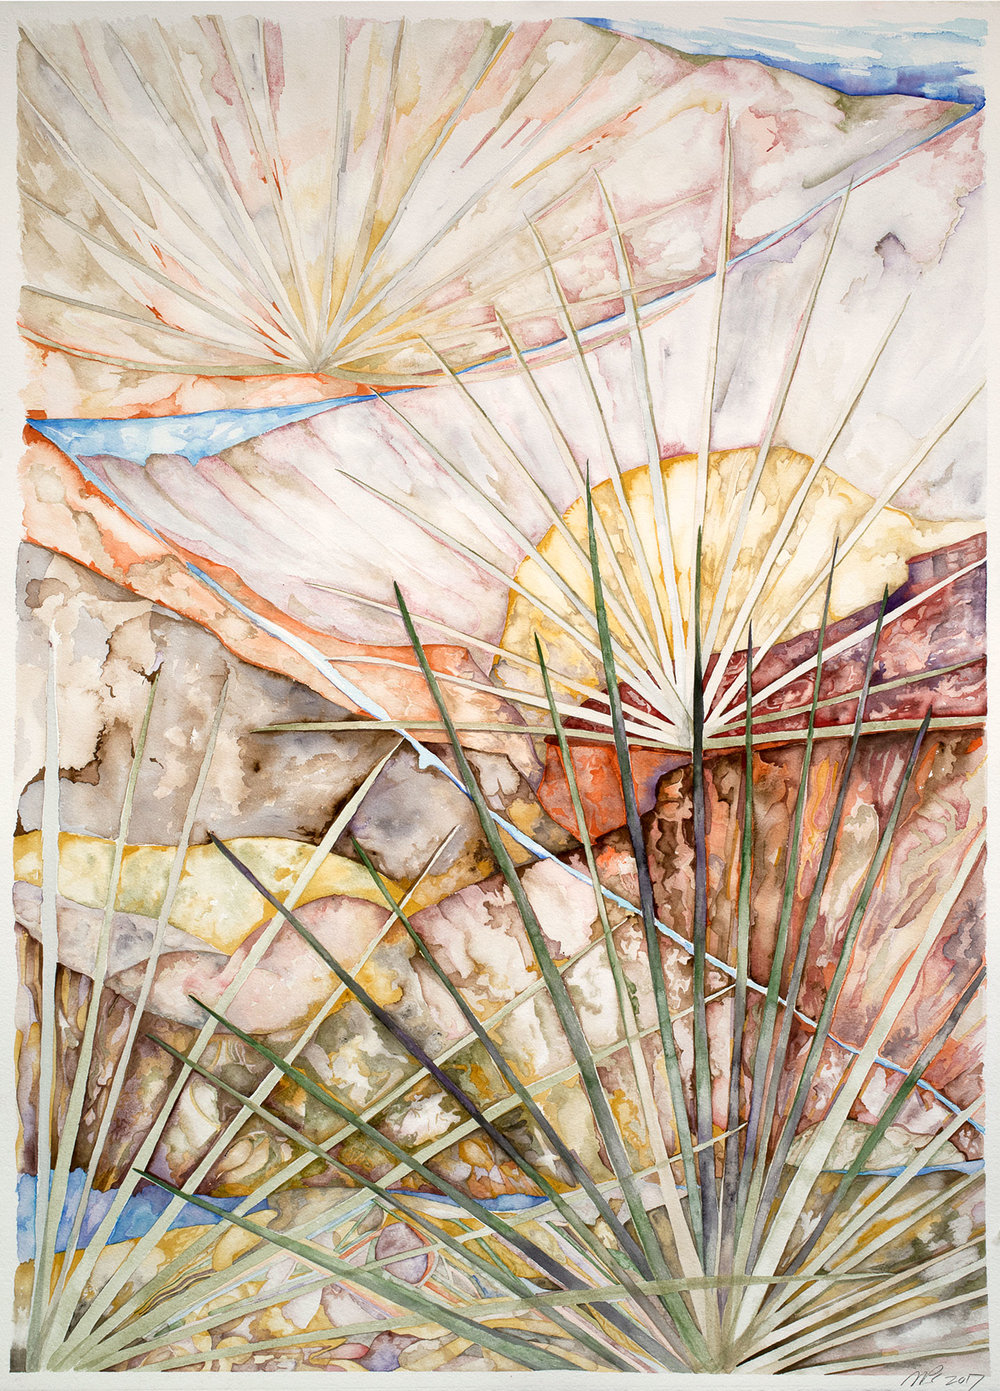 Sky Trail, 2017, watercolor on Arches watercolor paper, 41 x 29 in.